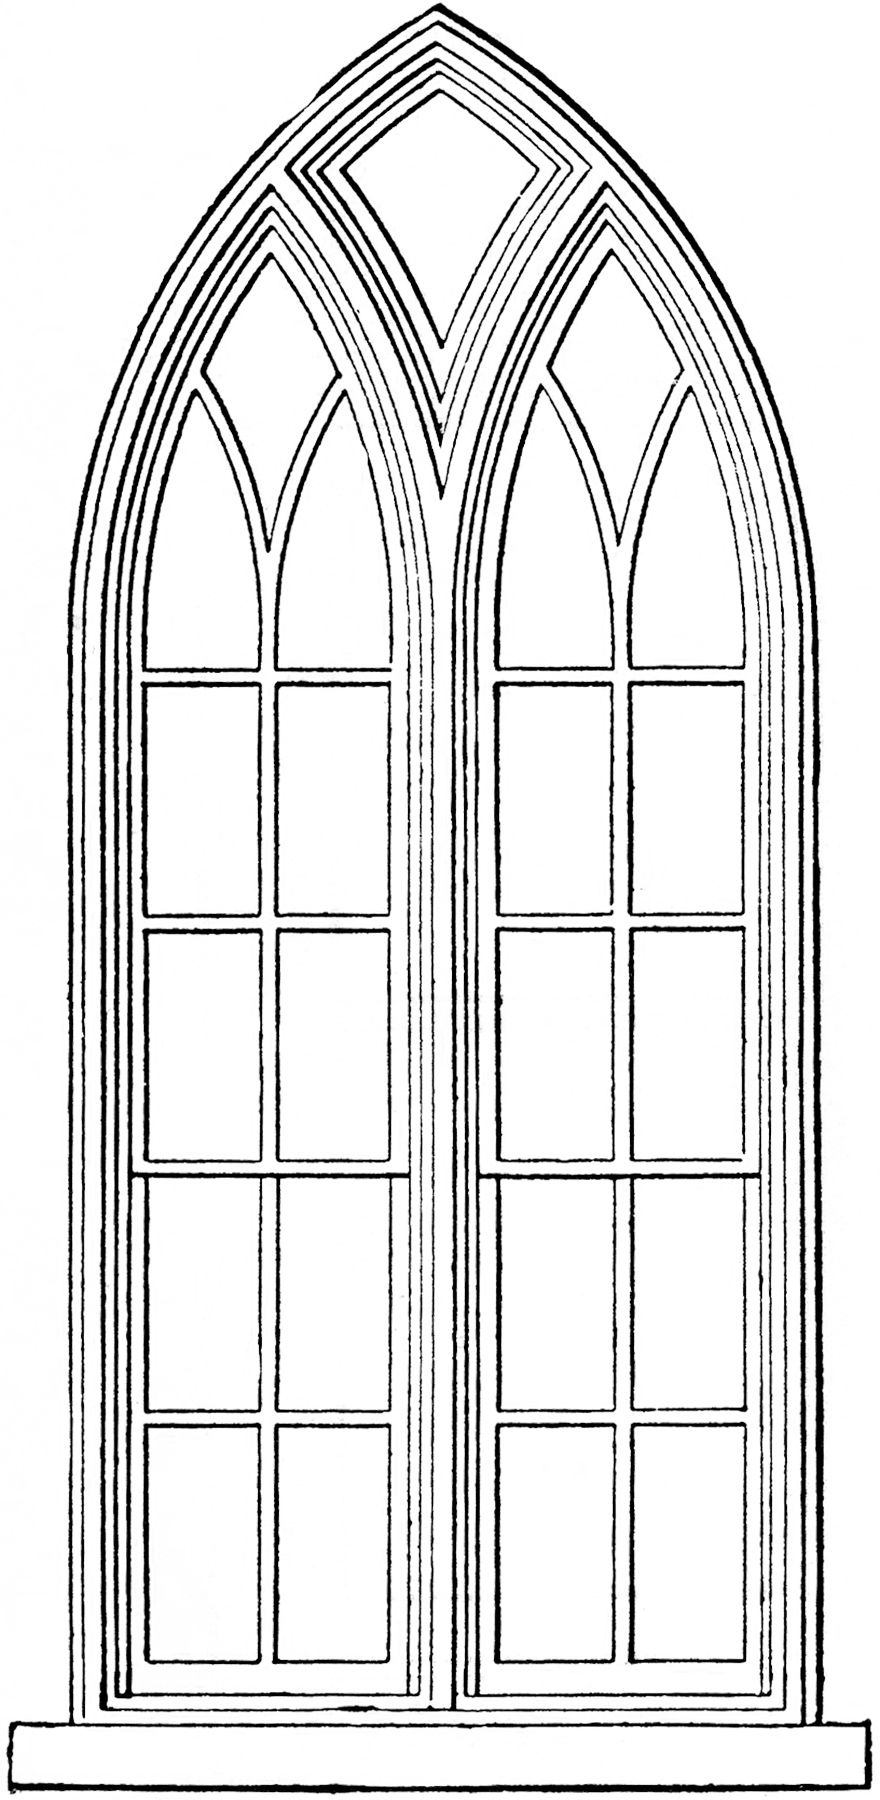 Gothic church windows clip art church windows clip art for Window design sketch